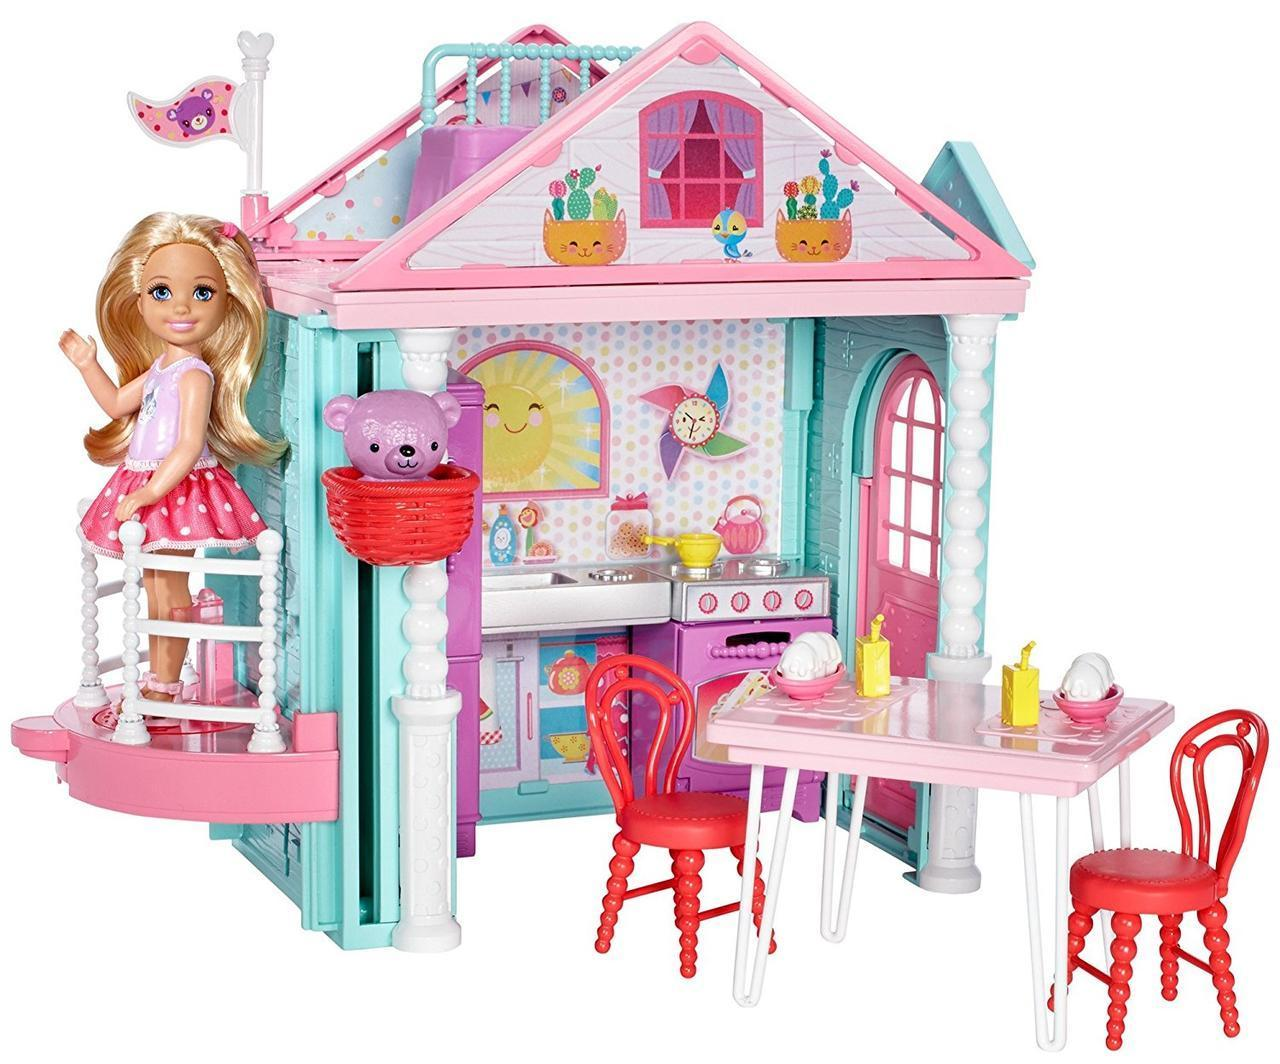 Кукла Барби Игровой набор Челси кукла Челси Barbie Club Chelsea Chelsea